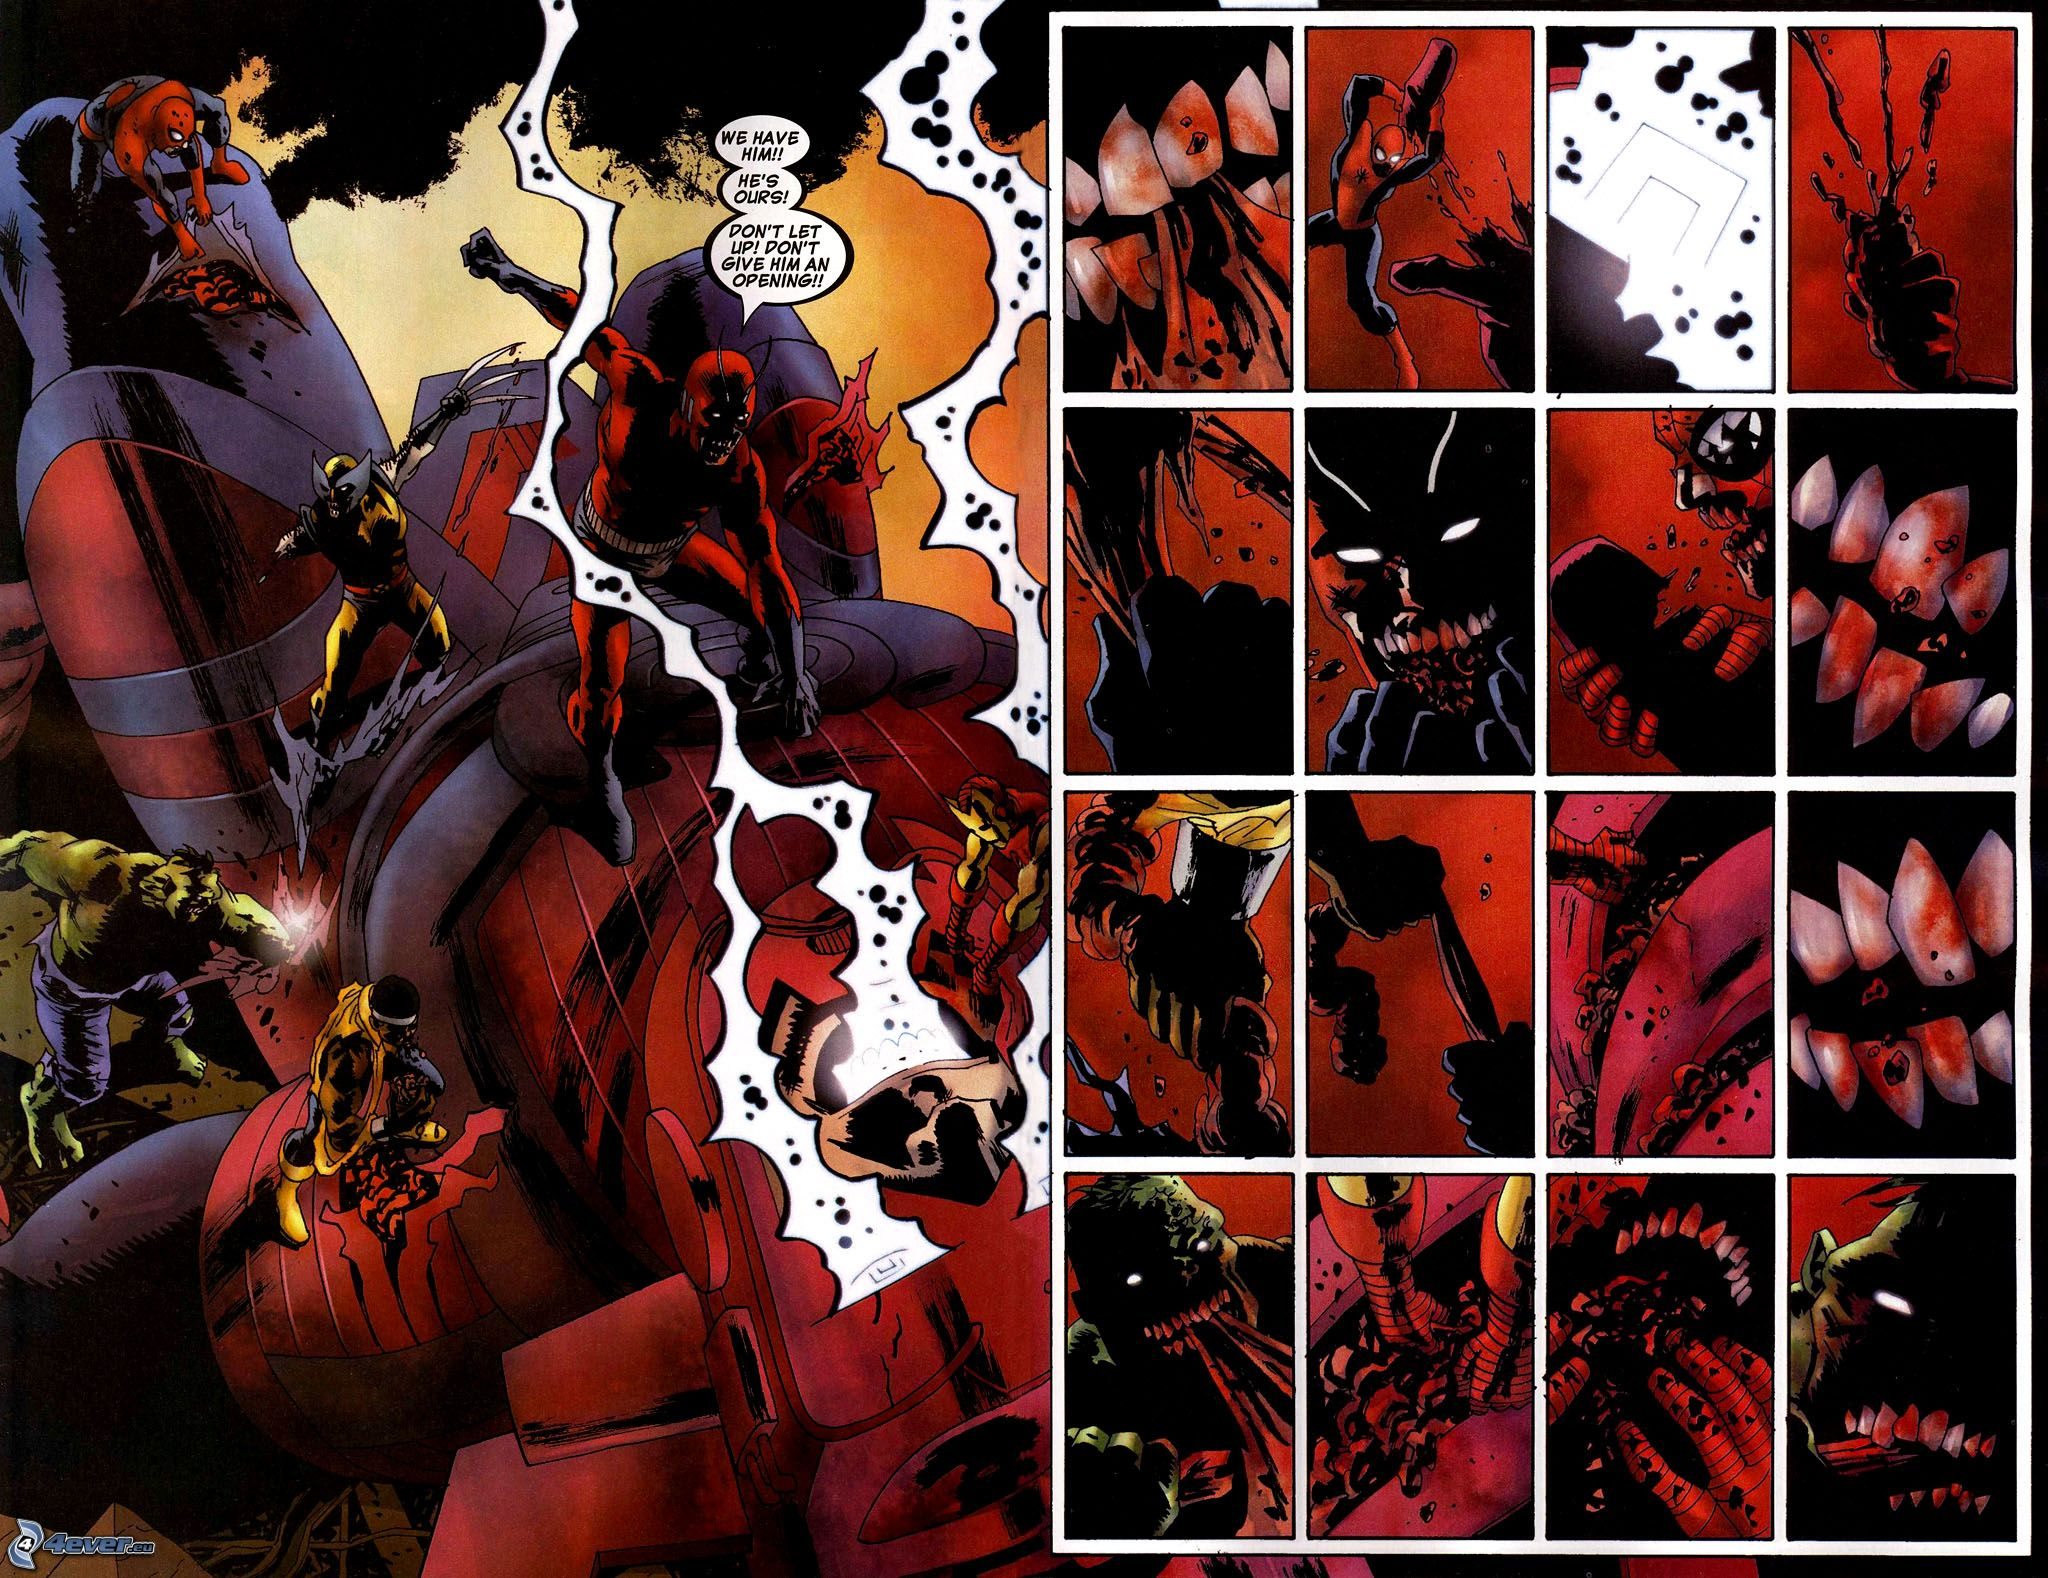 Marvel zombies pic free online hentia picture